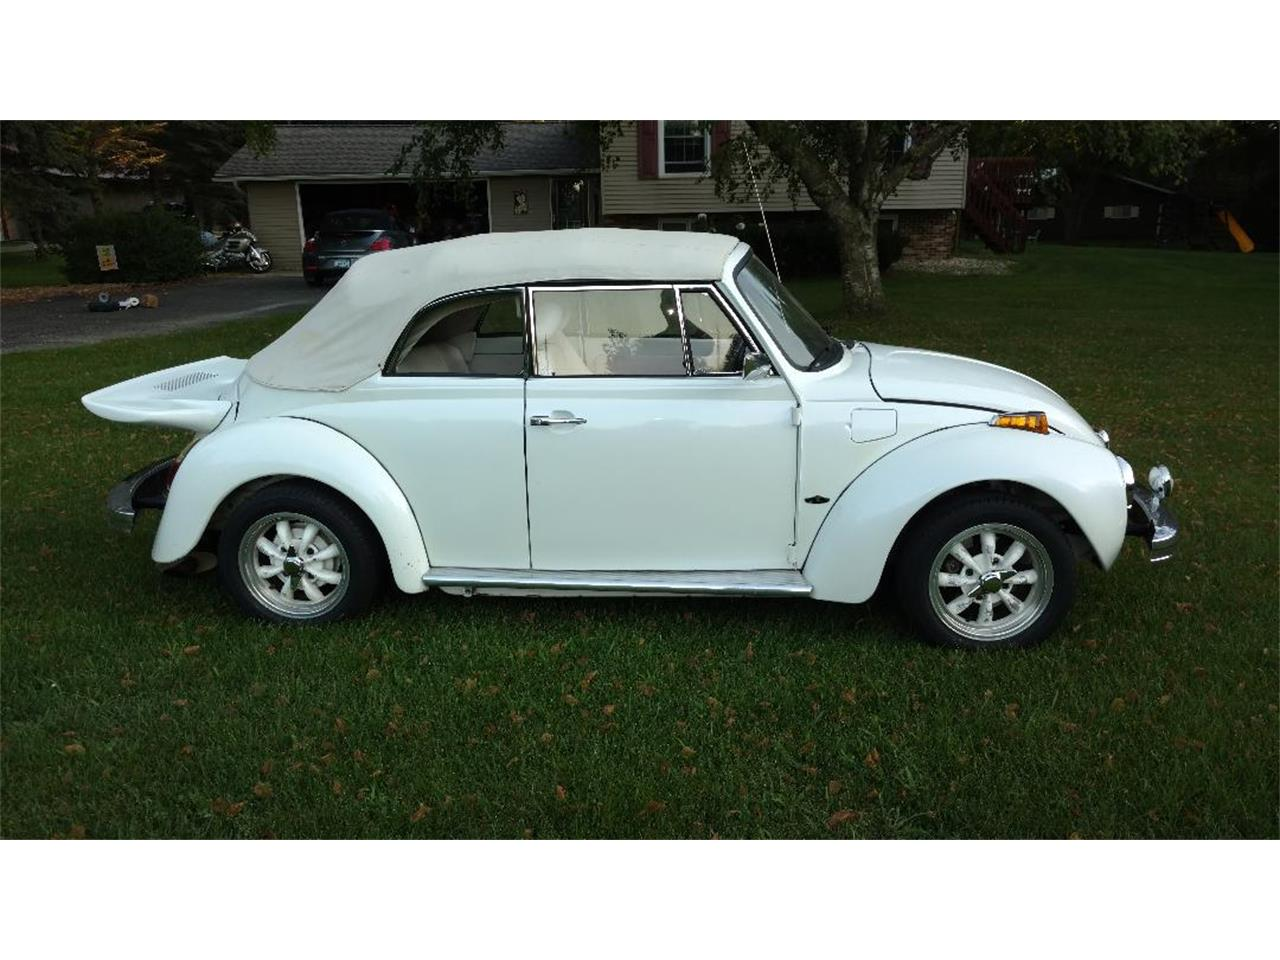 Large Picture of 1976 Volkswagen Beetle located in Mantorville Minnesota - $4,000.00 - QUA9